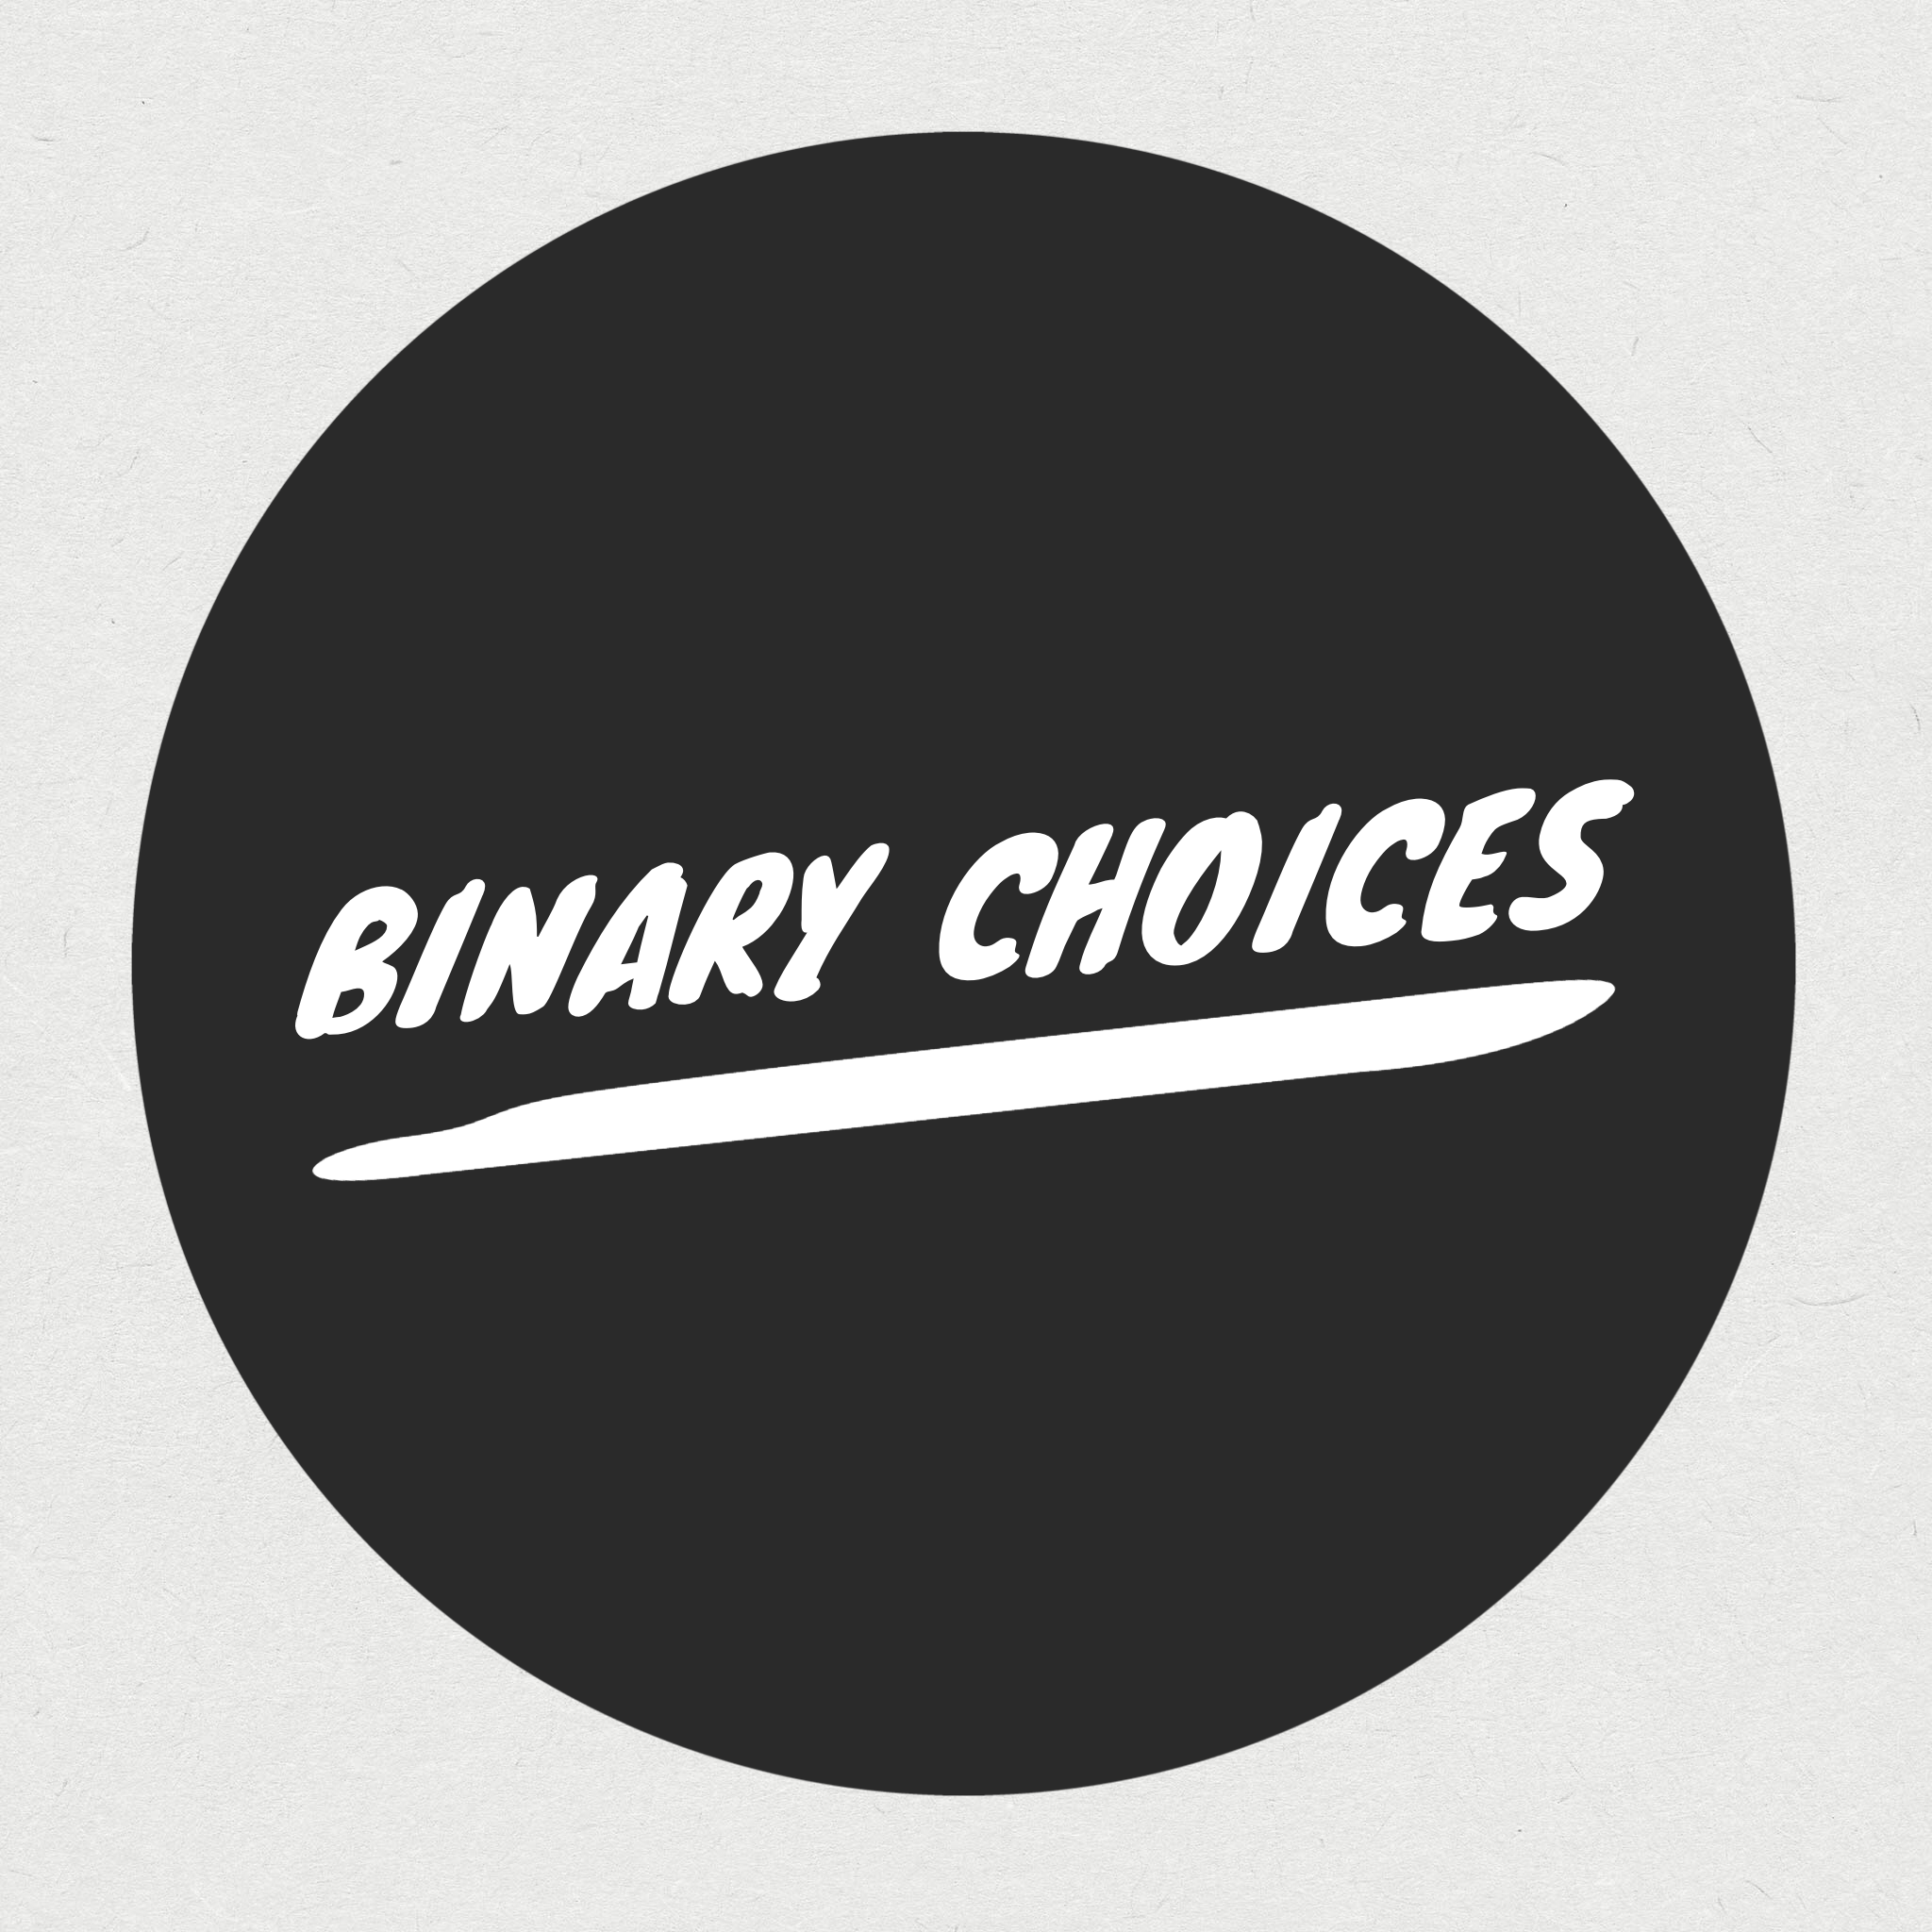 binary choices